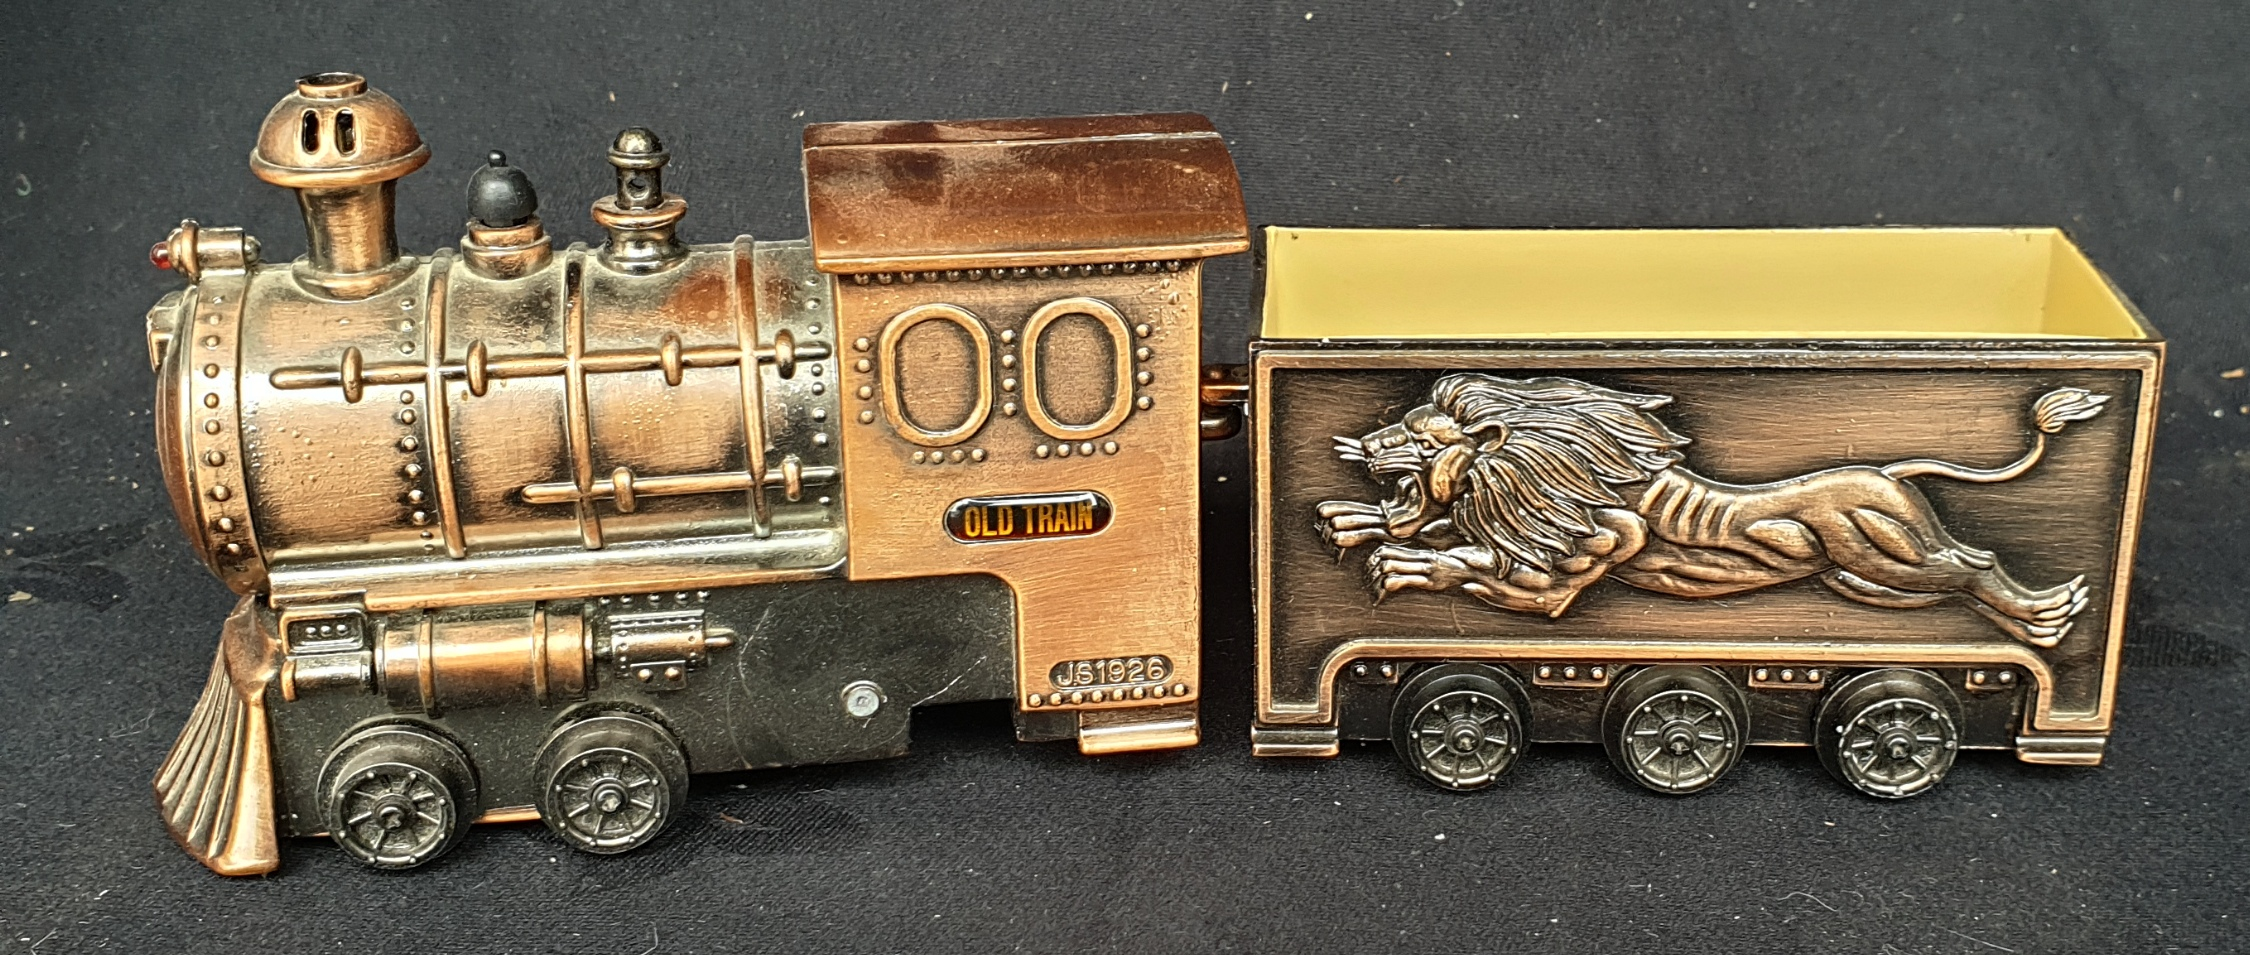 Vintage Train Novelty Table Lighter (A/F) - Image 2 of 3